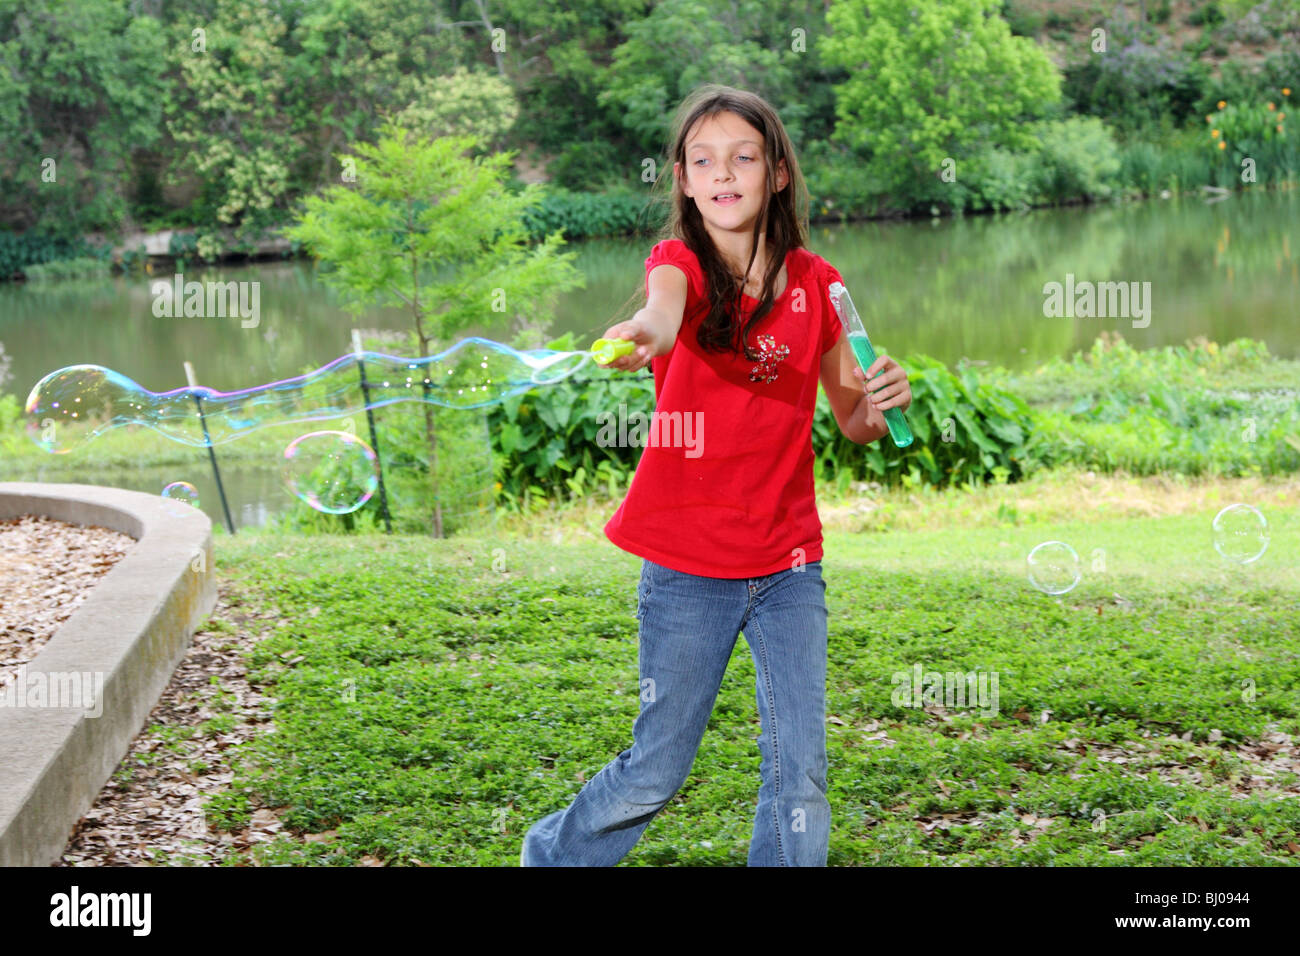 A young girl having fun playing with bubbles - Stock Image